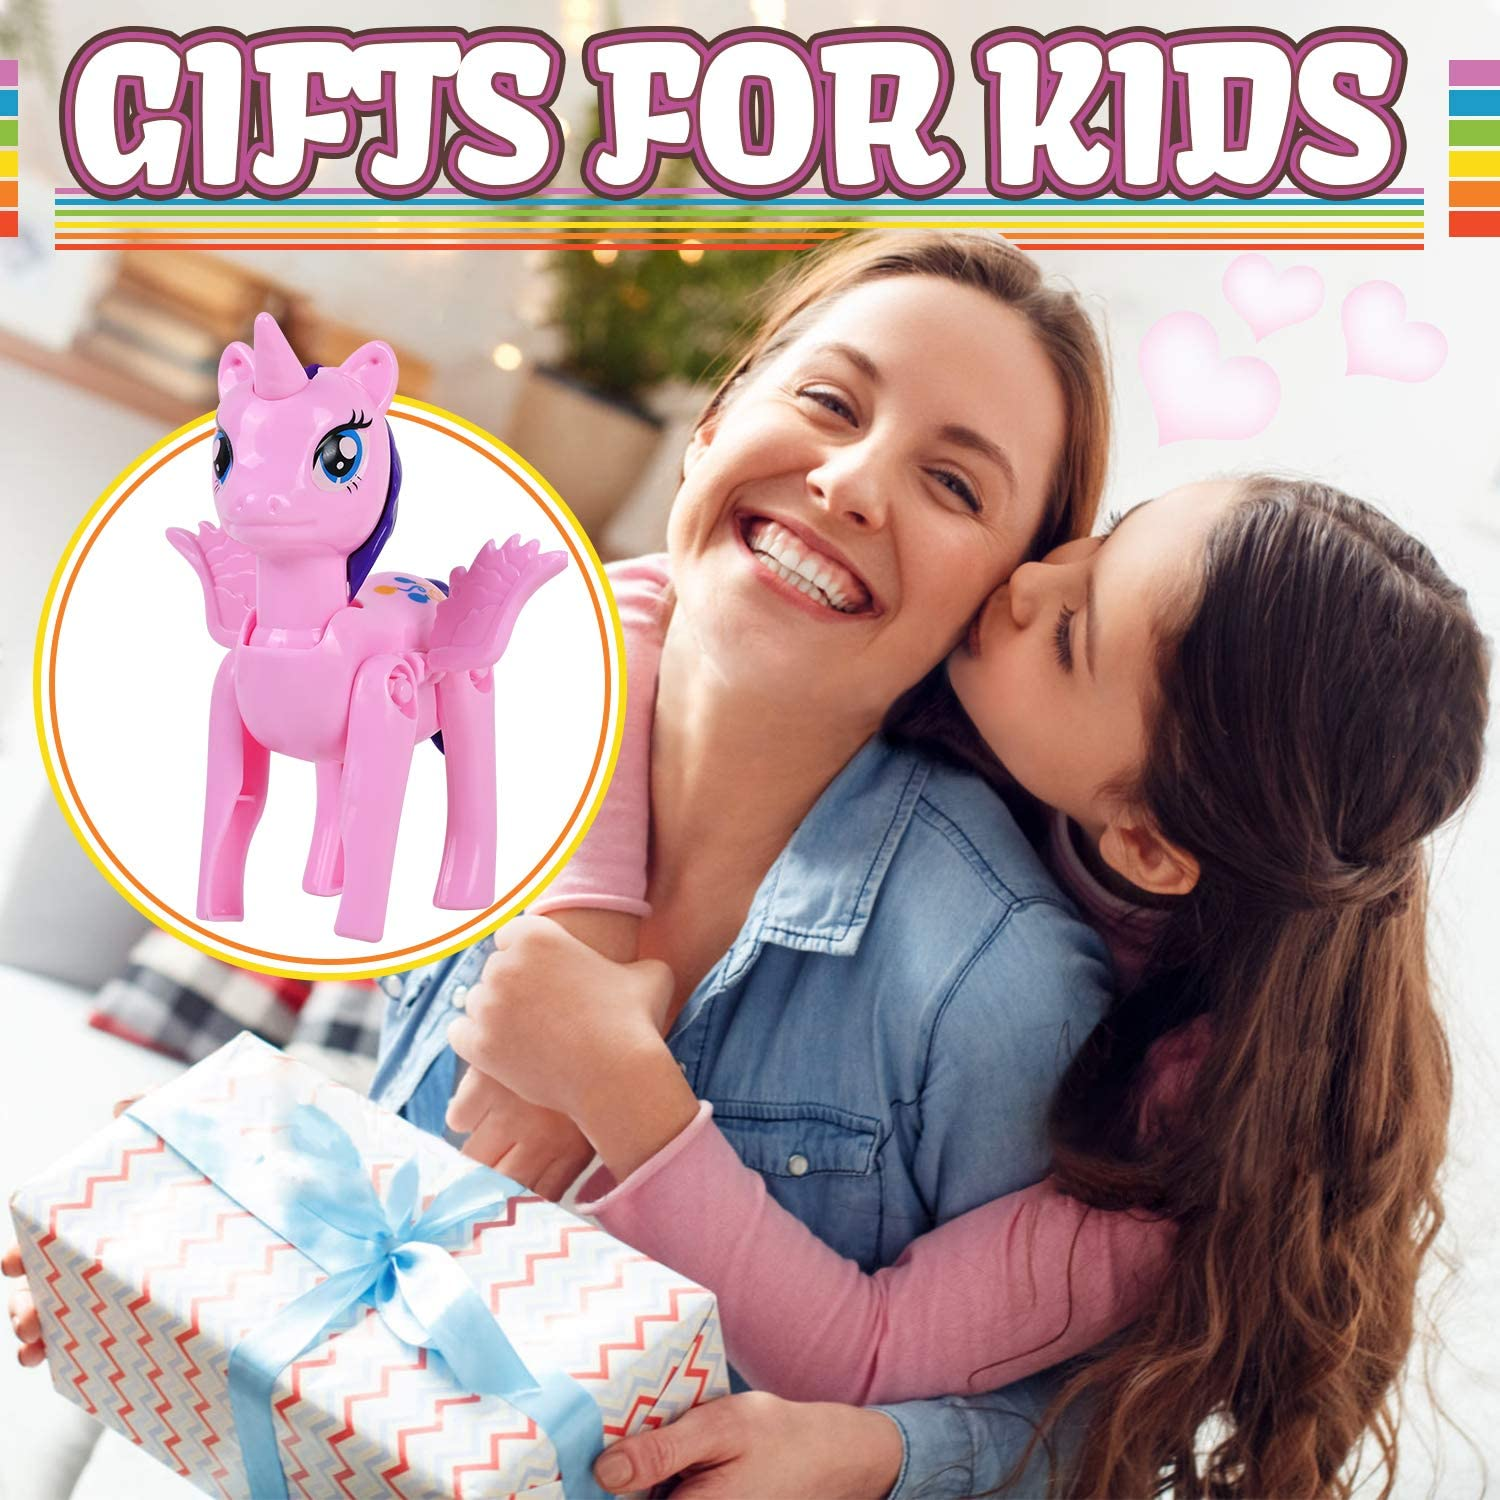 VAPCUFF Gifts for Girls Age 3 4 5 6 7 8, 4 Pack Easter Eggs Unicorn Toys Easter Baskets for Kids Toys for 2-7 Year Old Girl Birthday Christmas Easter Gifts for Kids Stocking Stuffers - Best Gifts